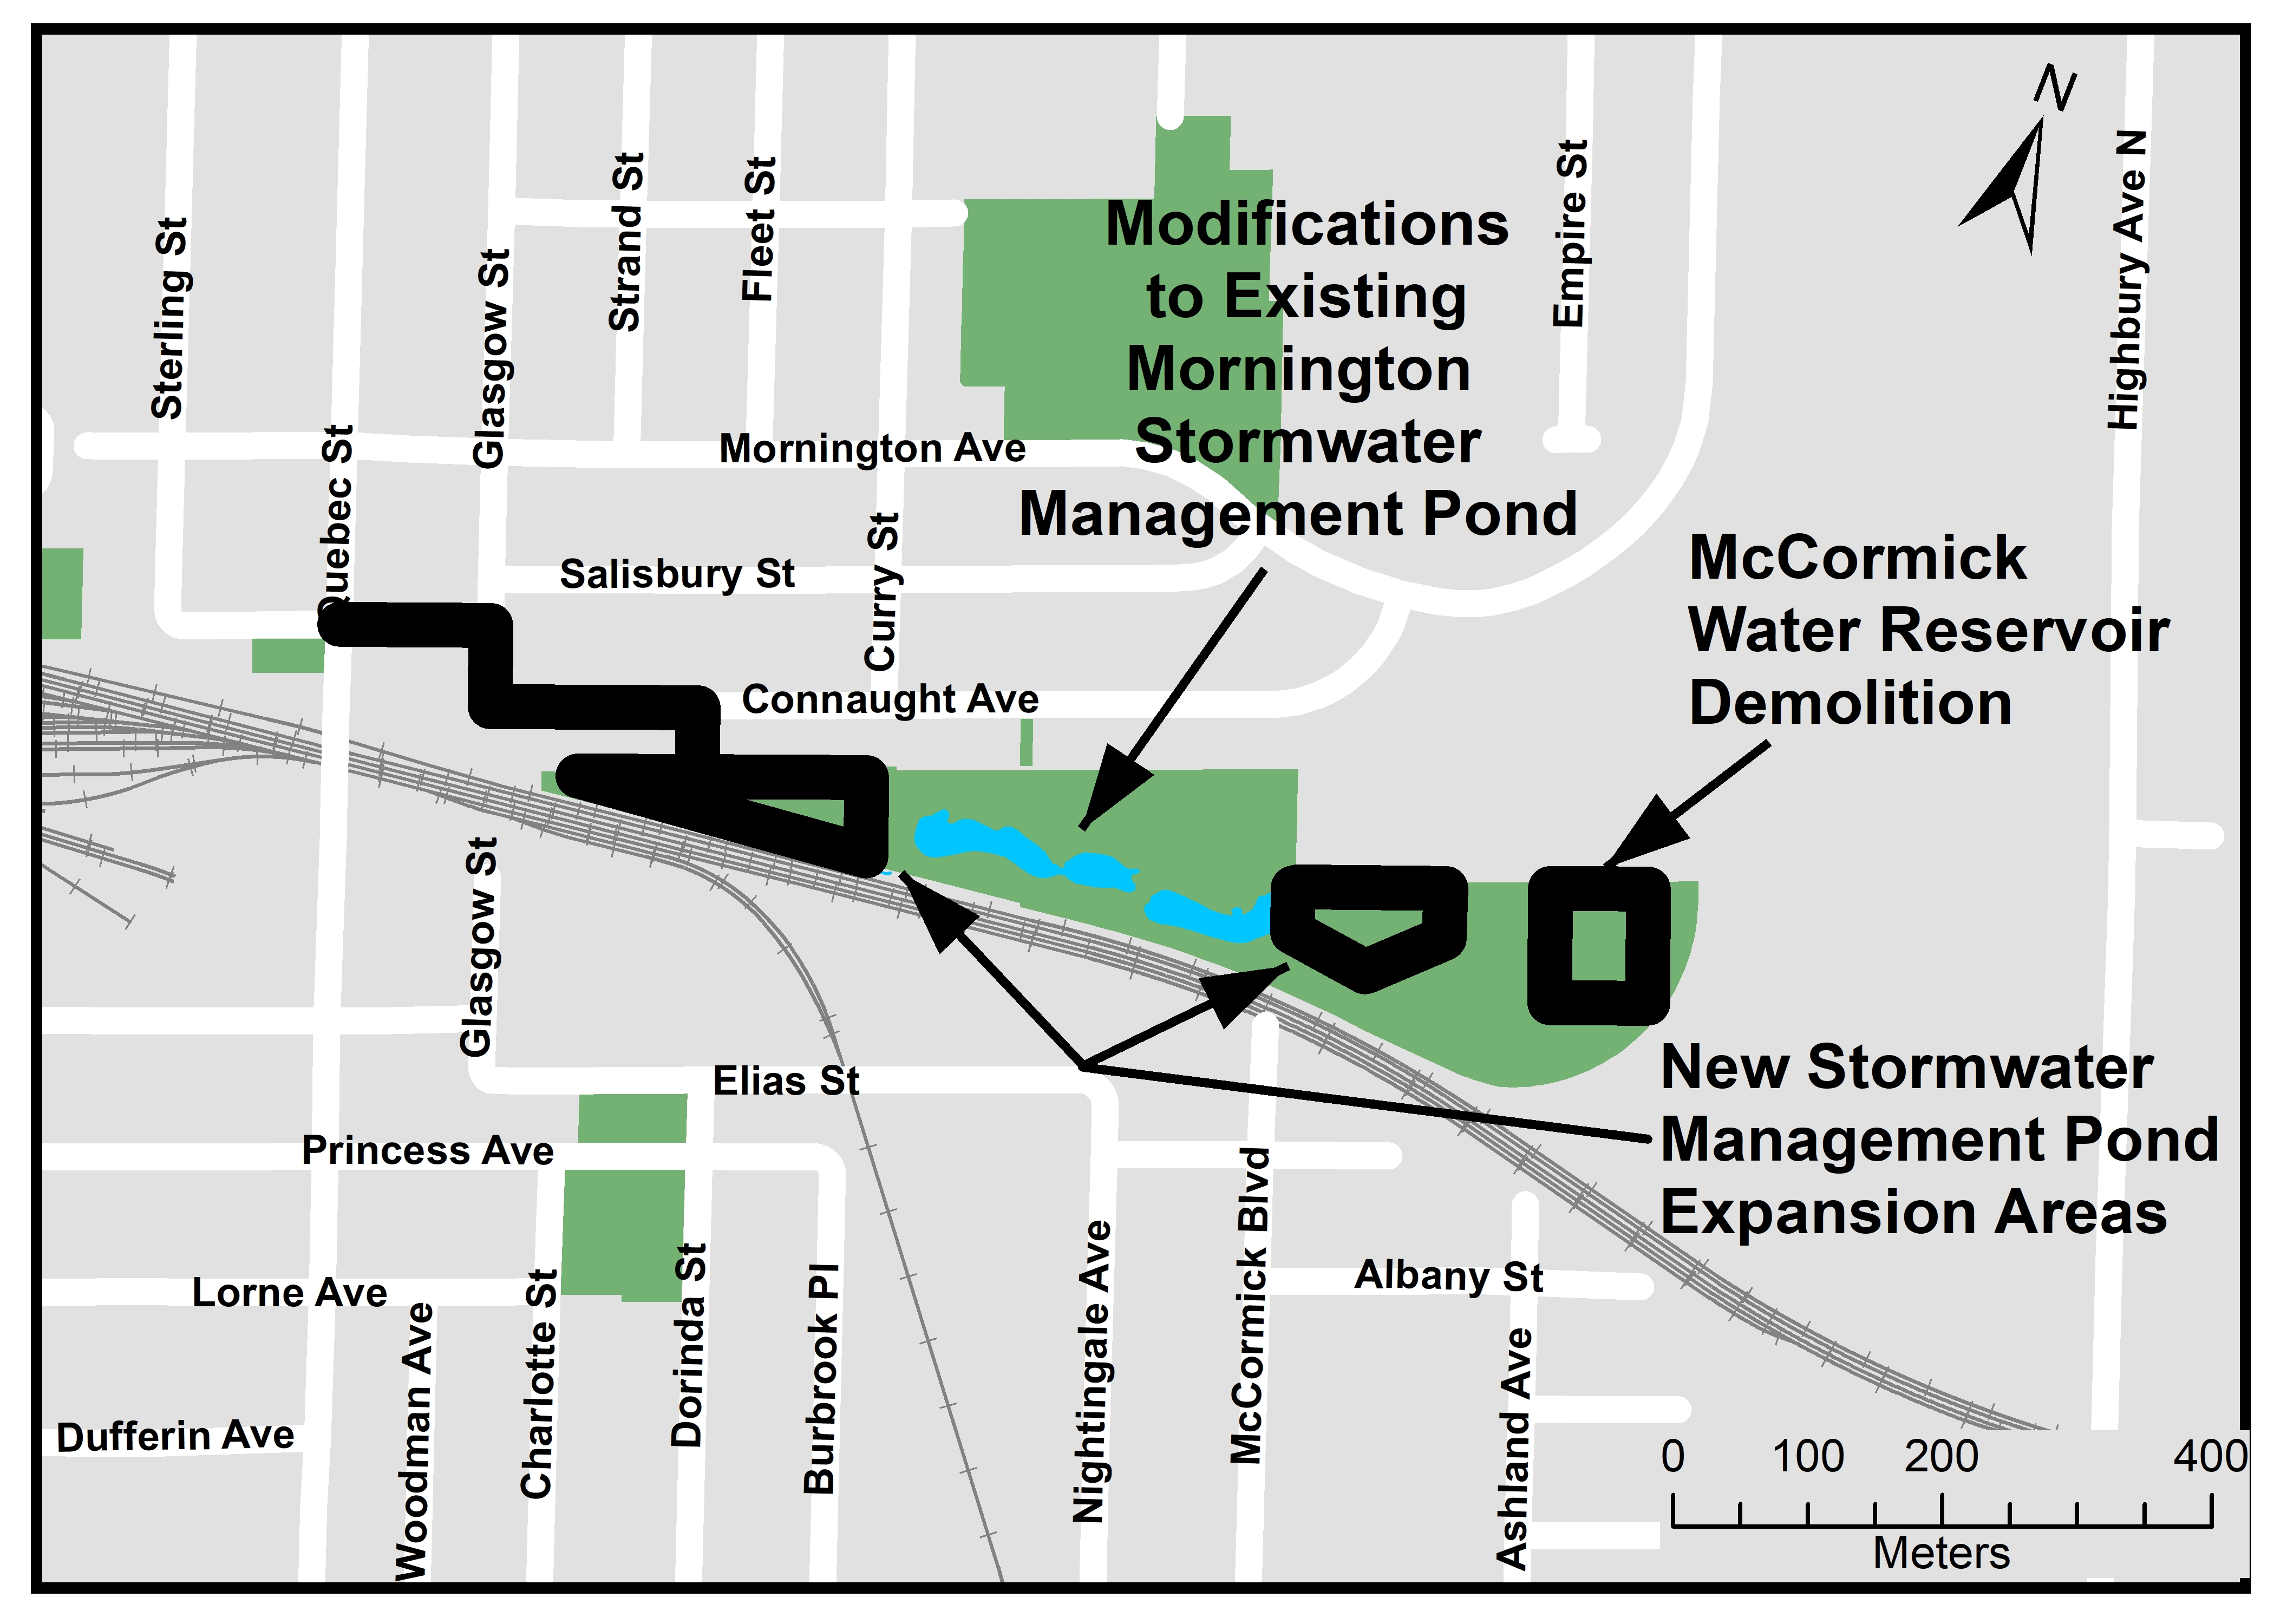 The City of London will reconstruct Salisbury Street from Quebec Street to Glasgow Street, Glasgow Street from Salisbury Street to Connaught Avenue, and Connaught Avenue from Glasgow Street to the west entrance of Mornington Park. For more information, please contact Paul Titus at ptitus@london.ca or by calling 519-661-2489 x 4948.